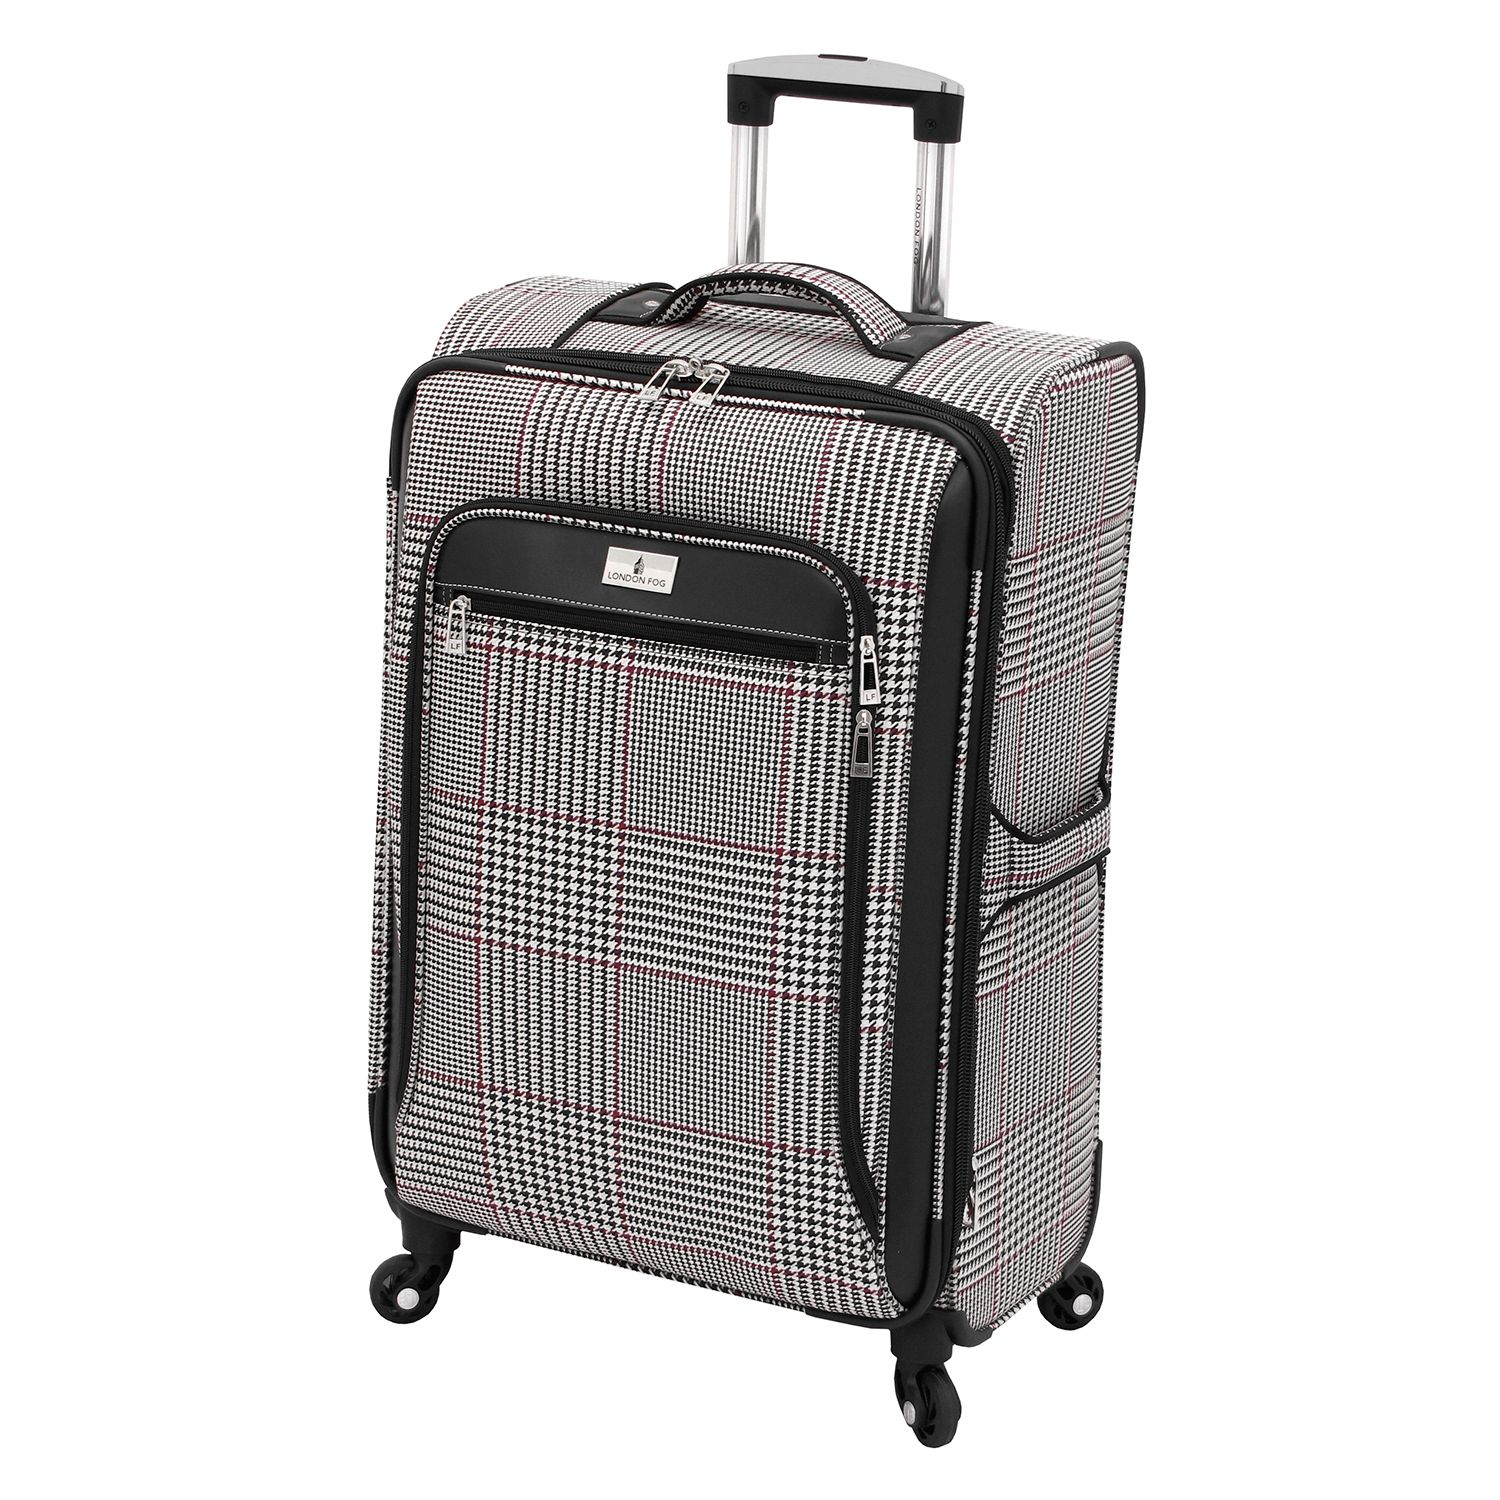 london fog andover houndstooth 25inch spinner luggage - London Fog Luggage